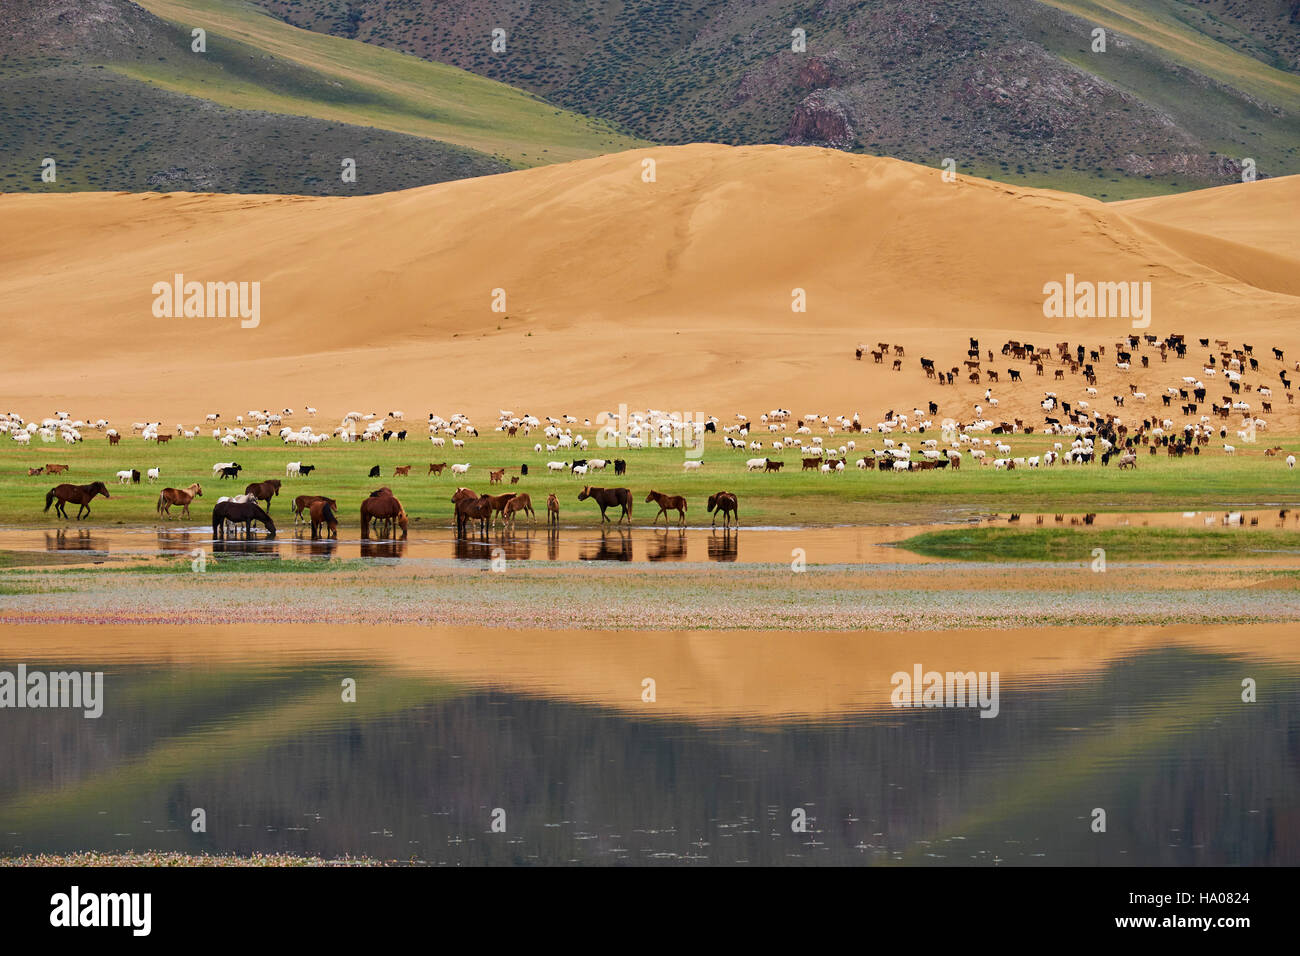 Mongolia, Zavkhan province, Khar Nuur lake, sheep and horse herd Stock Photo